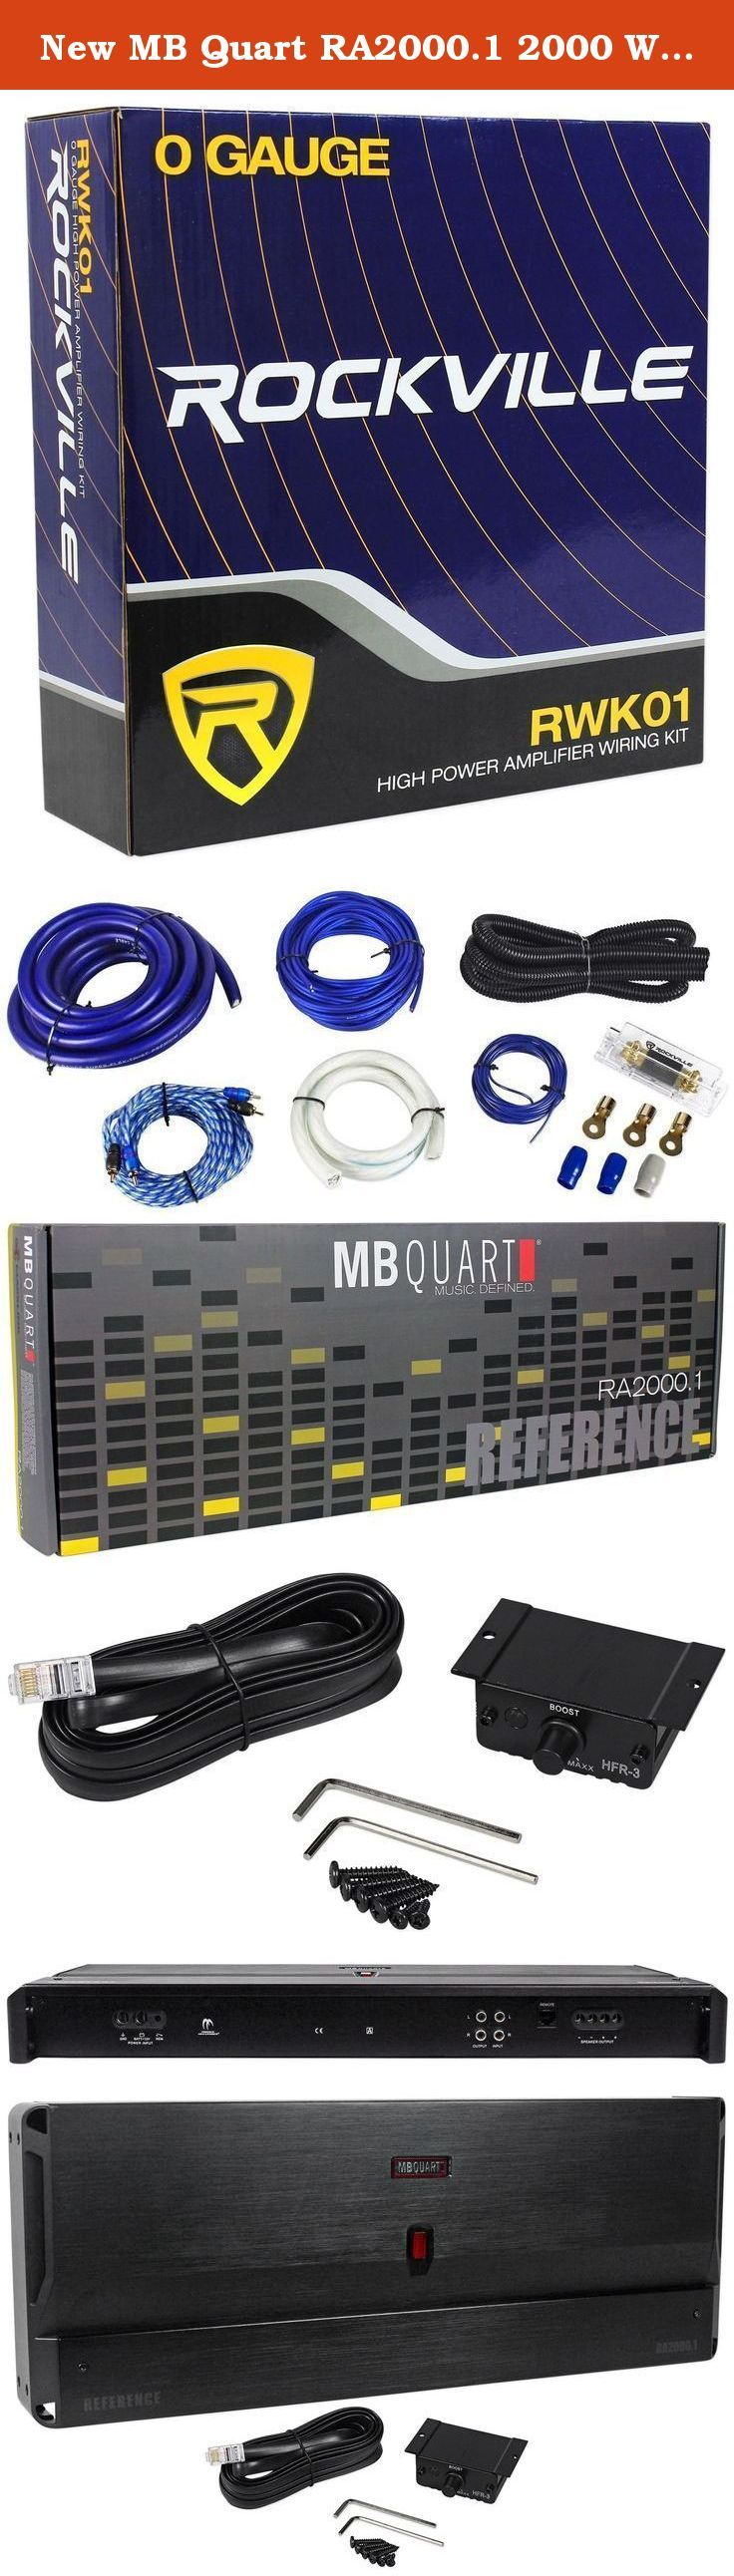 Vm Audio 4 Gauge Amplifier Wiring Kit W 45 Farad Power Amp Installation Ofc Ebay New Mb Quart Ra20001 2000 Watt Rms Class D Mono Reference Car Hey Folks Thanks For Checking Out The